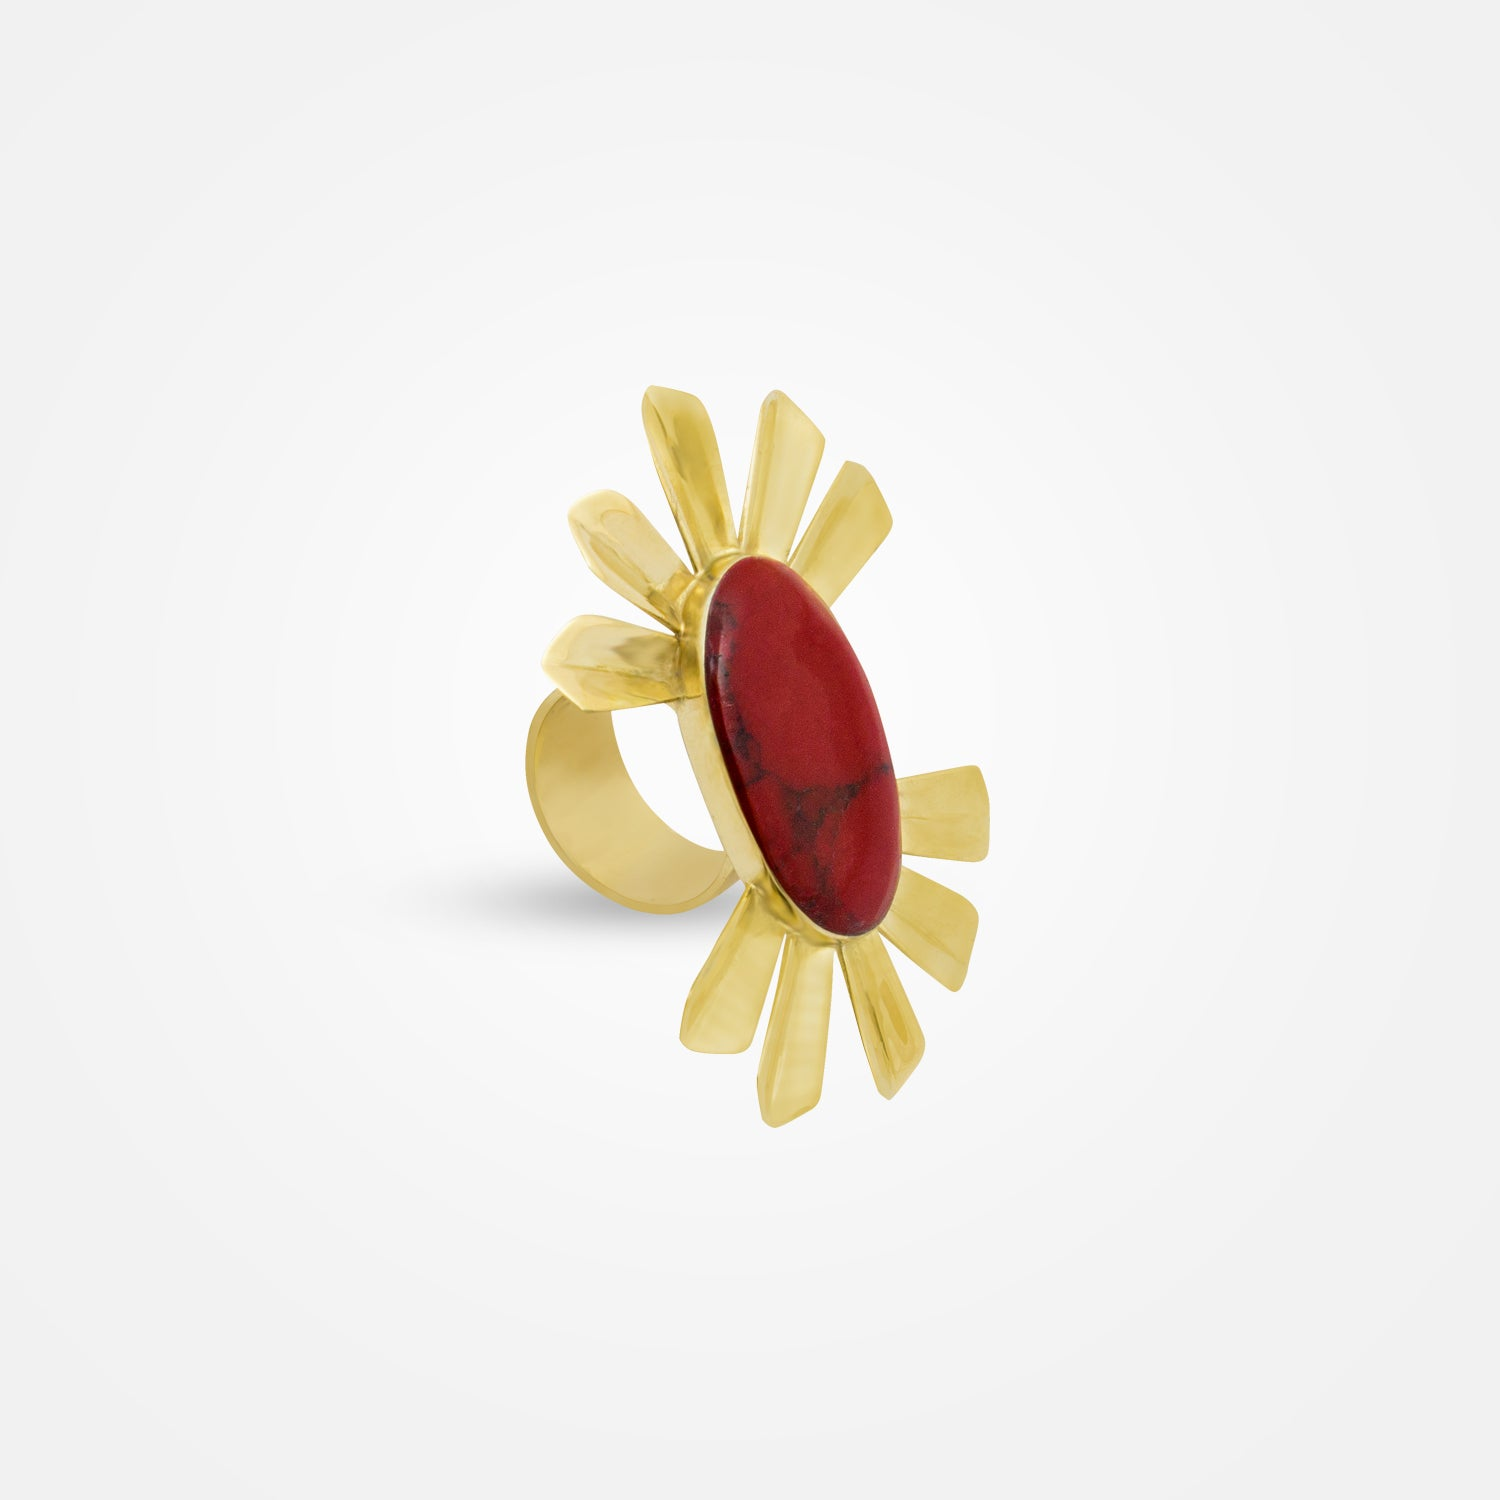 22k Gold Plated Radiant Set - Ring with Red Stones by Daniel Espinosa